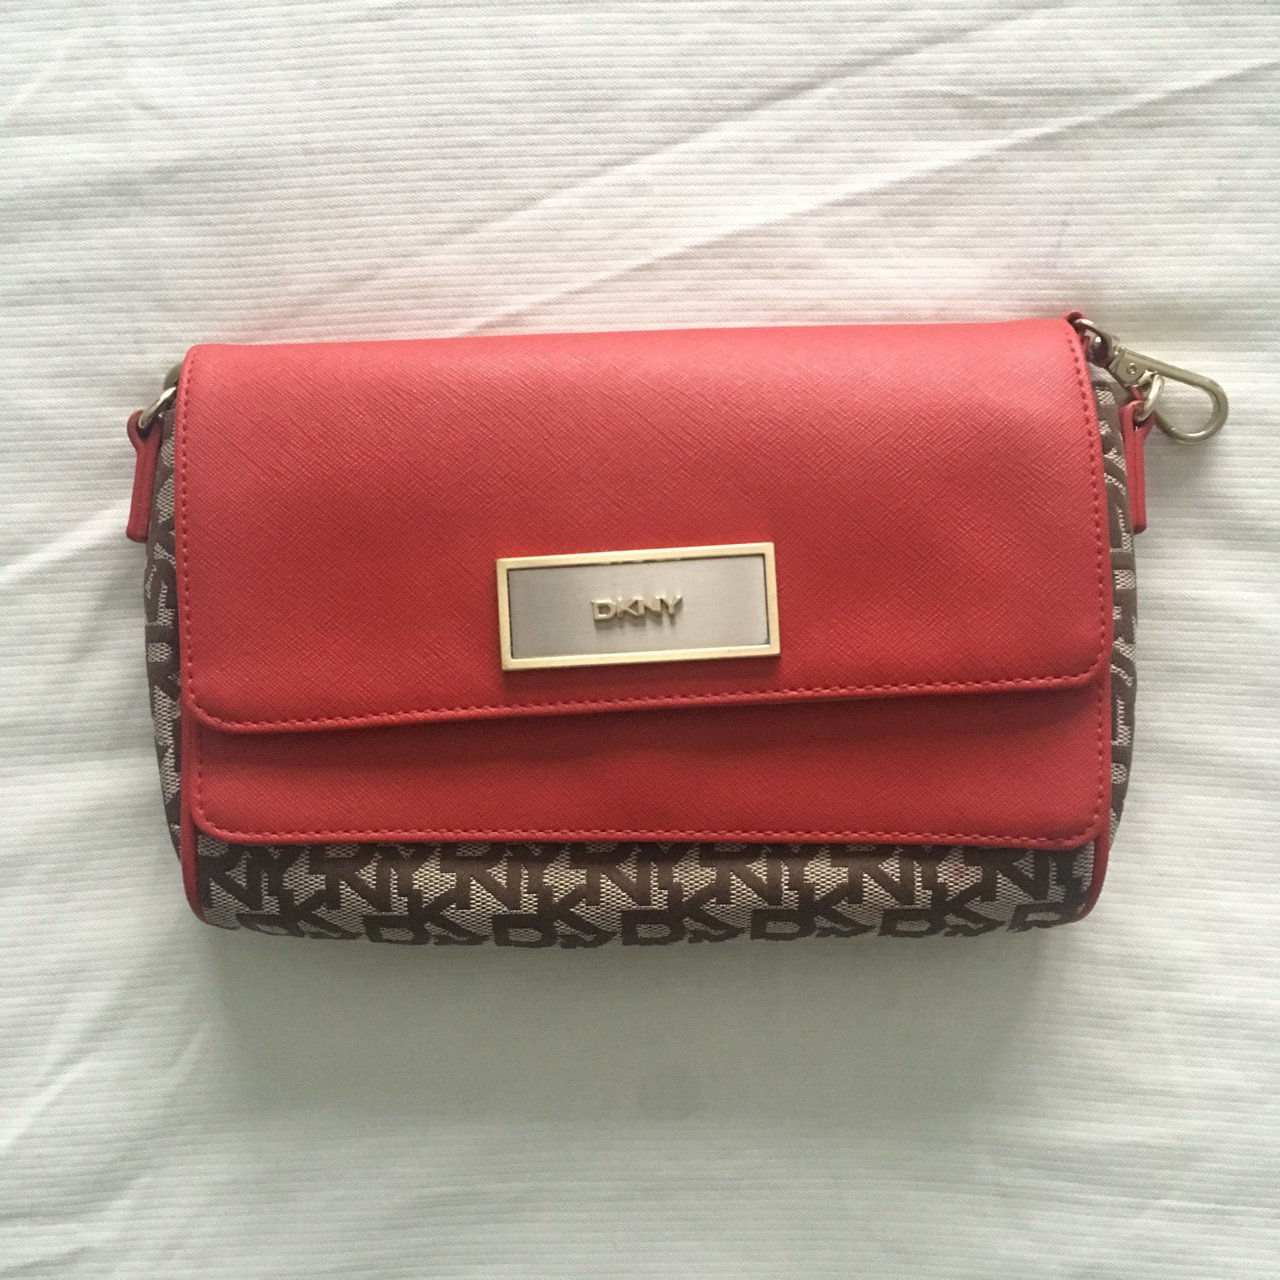 DKNY Small Bag With Detachable 0